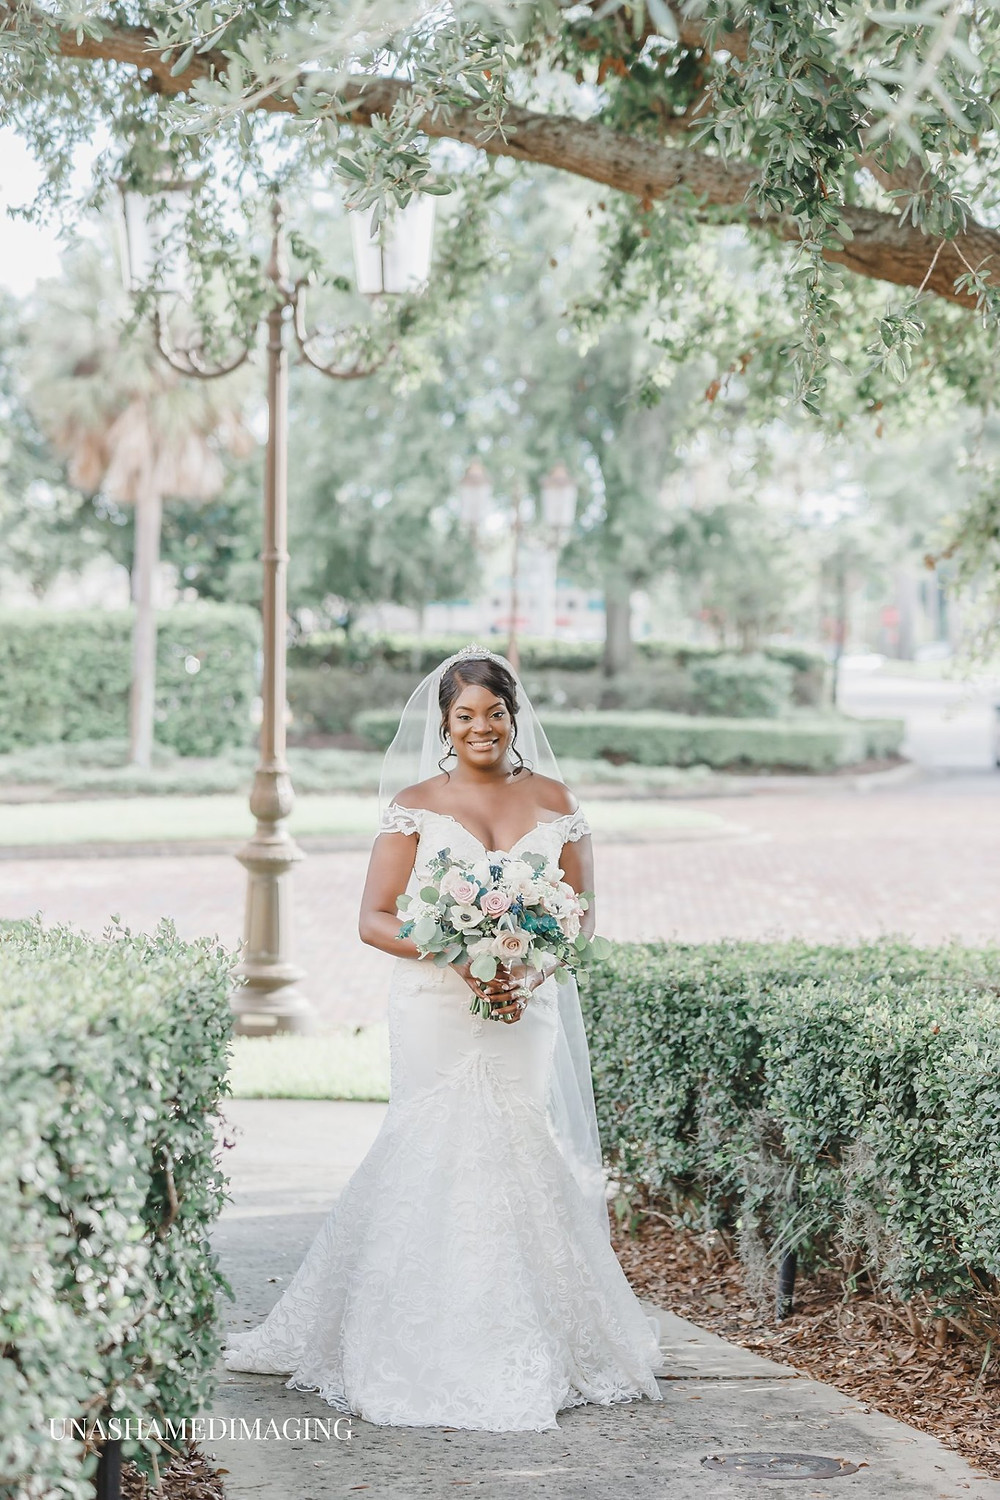 3 Questions To Ask Your Wedding Photographer